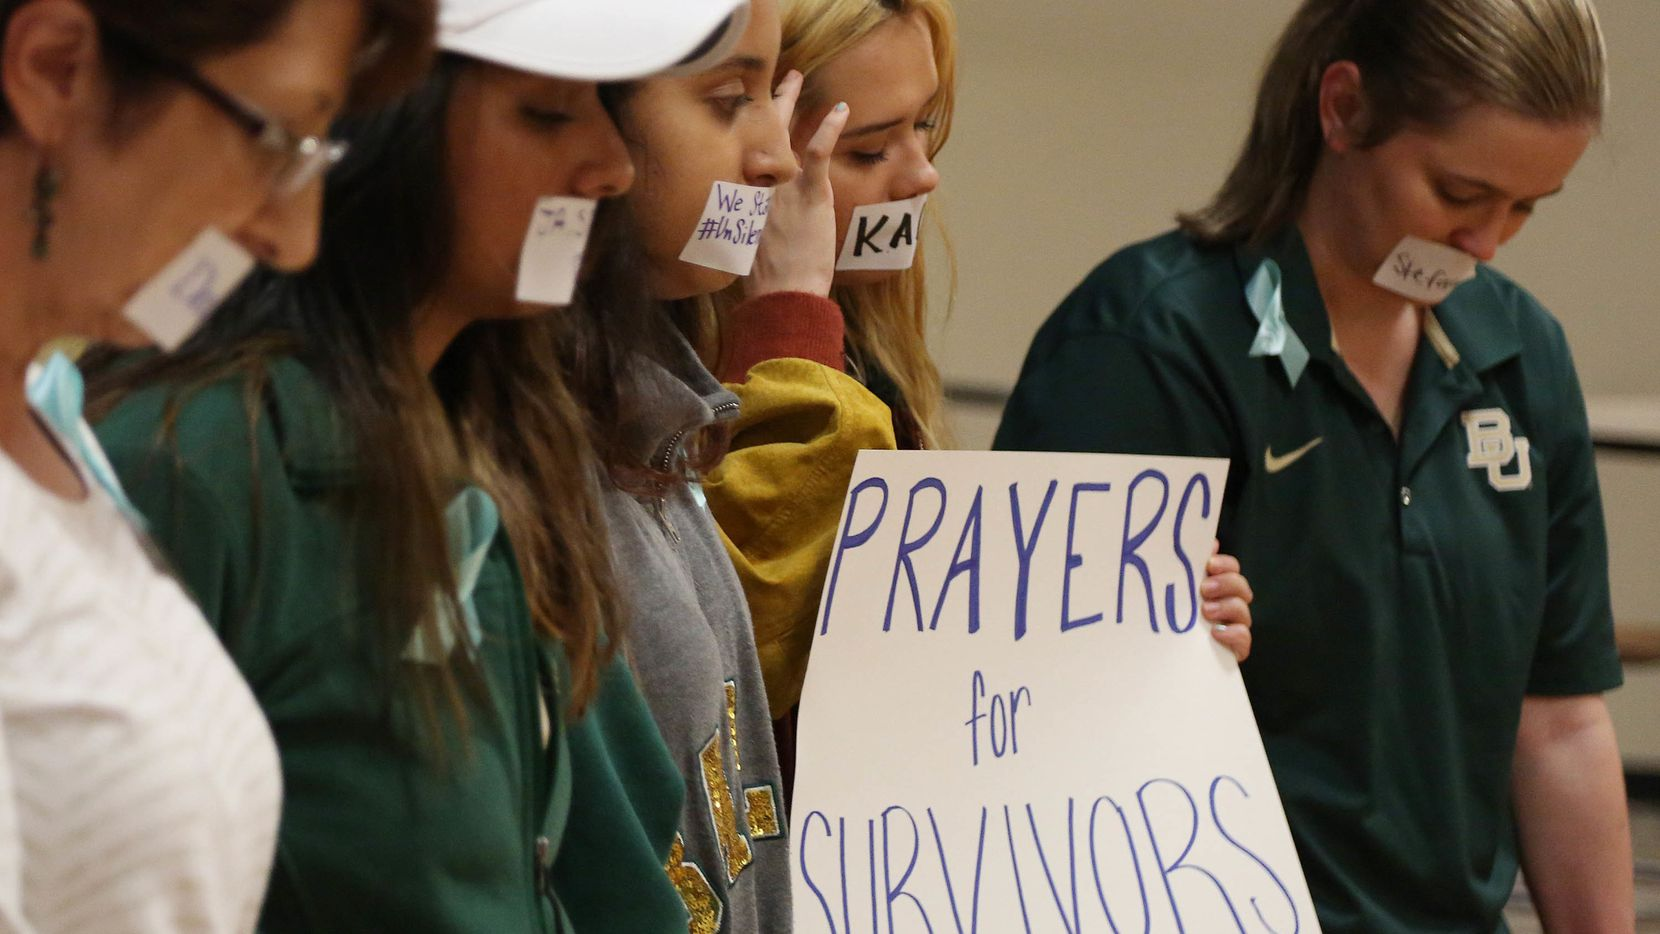 Current and former Baylor students held a rally warning of sexually assaults on and off campus in June.